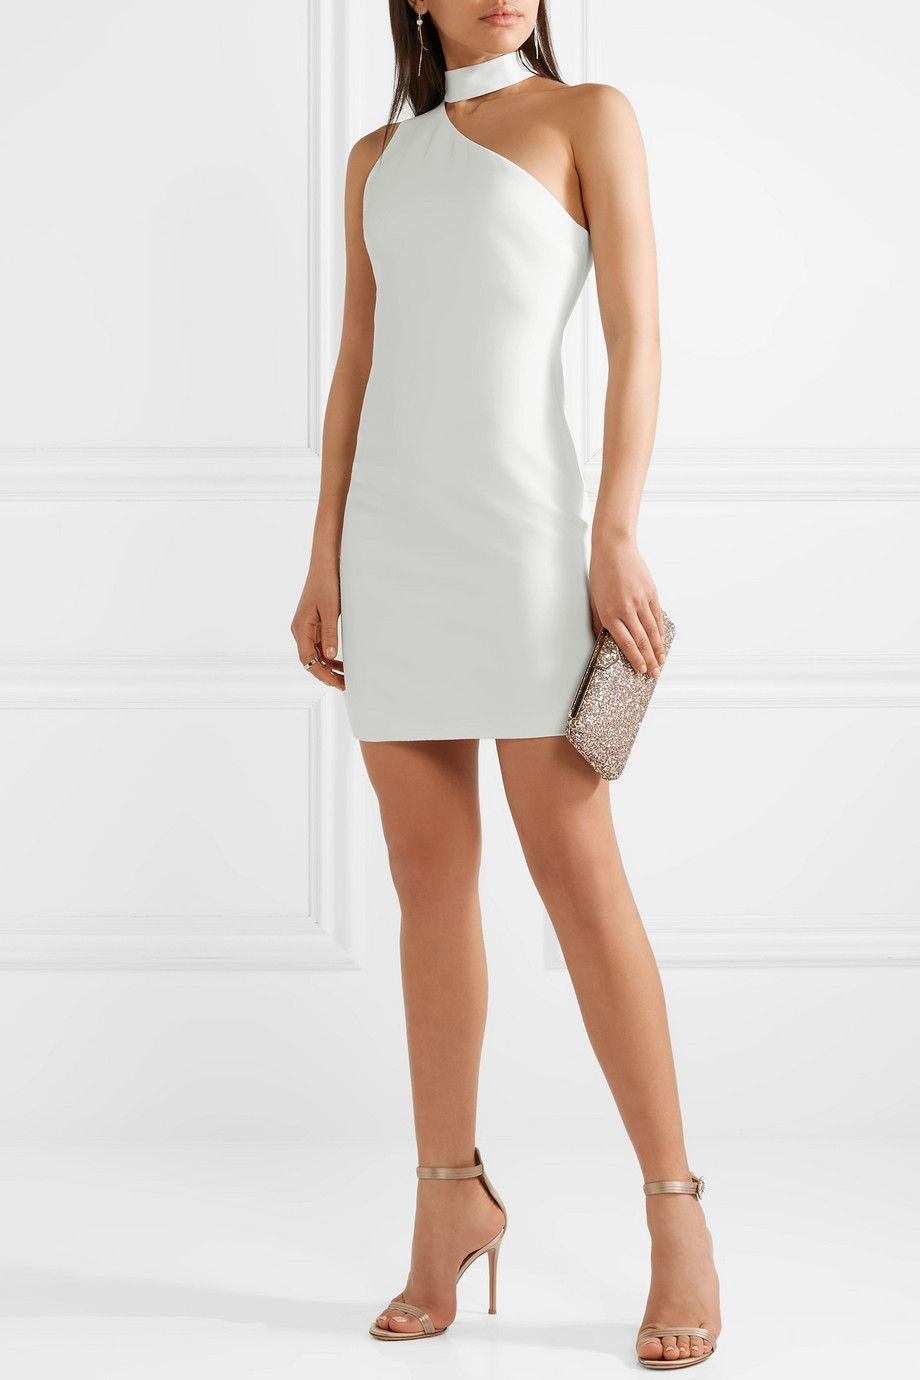 Soshana One-shoulder Crepe Mini Dress - Off-white Alice & Olivia